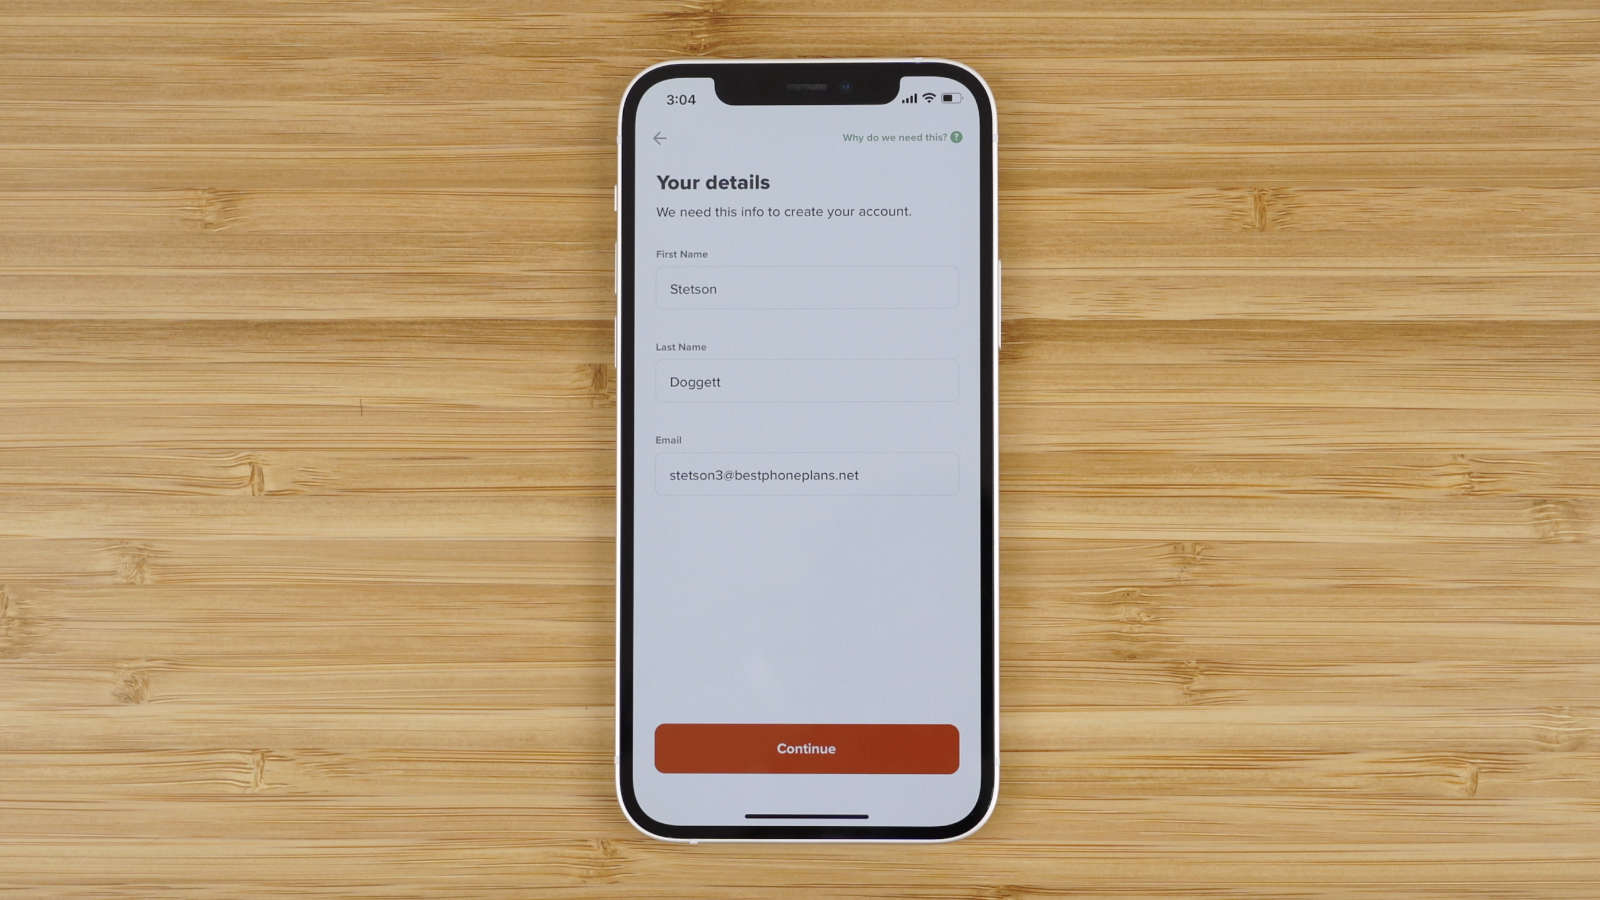 create your Mint Mobile account by entering your first name, last name, and email